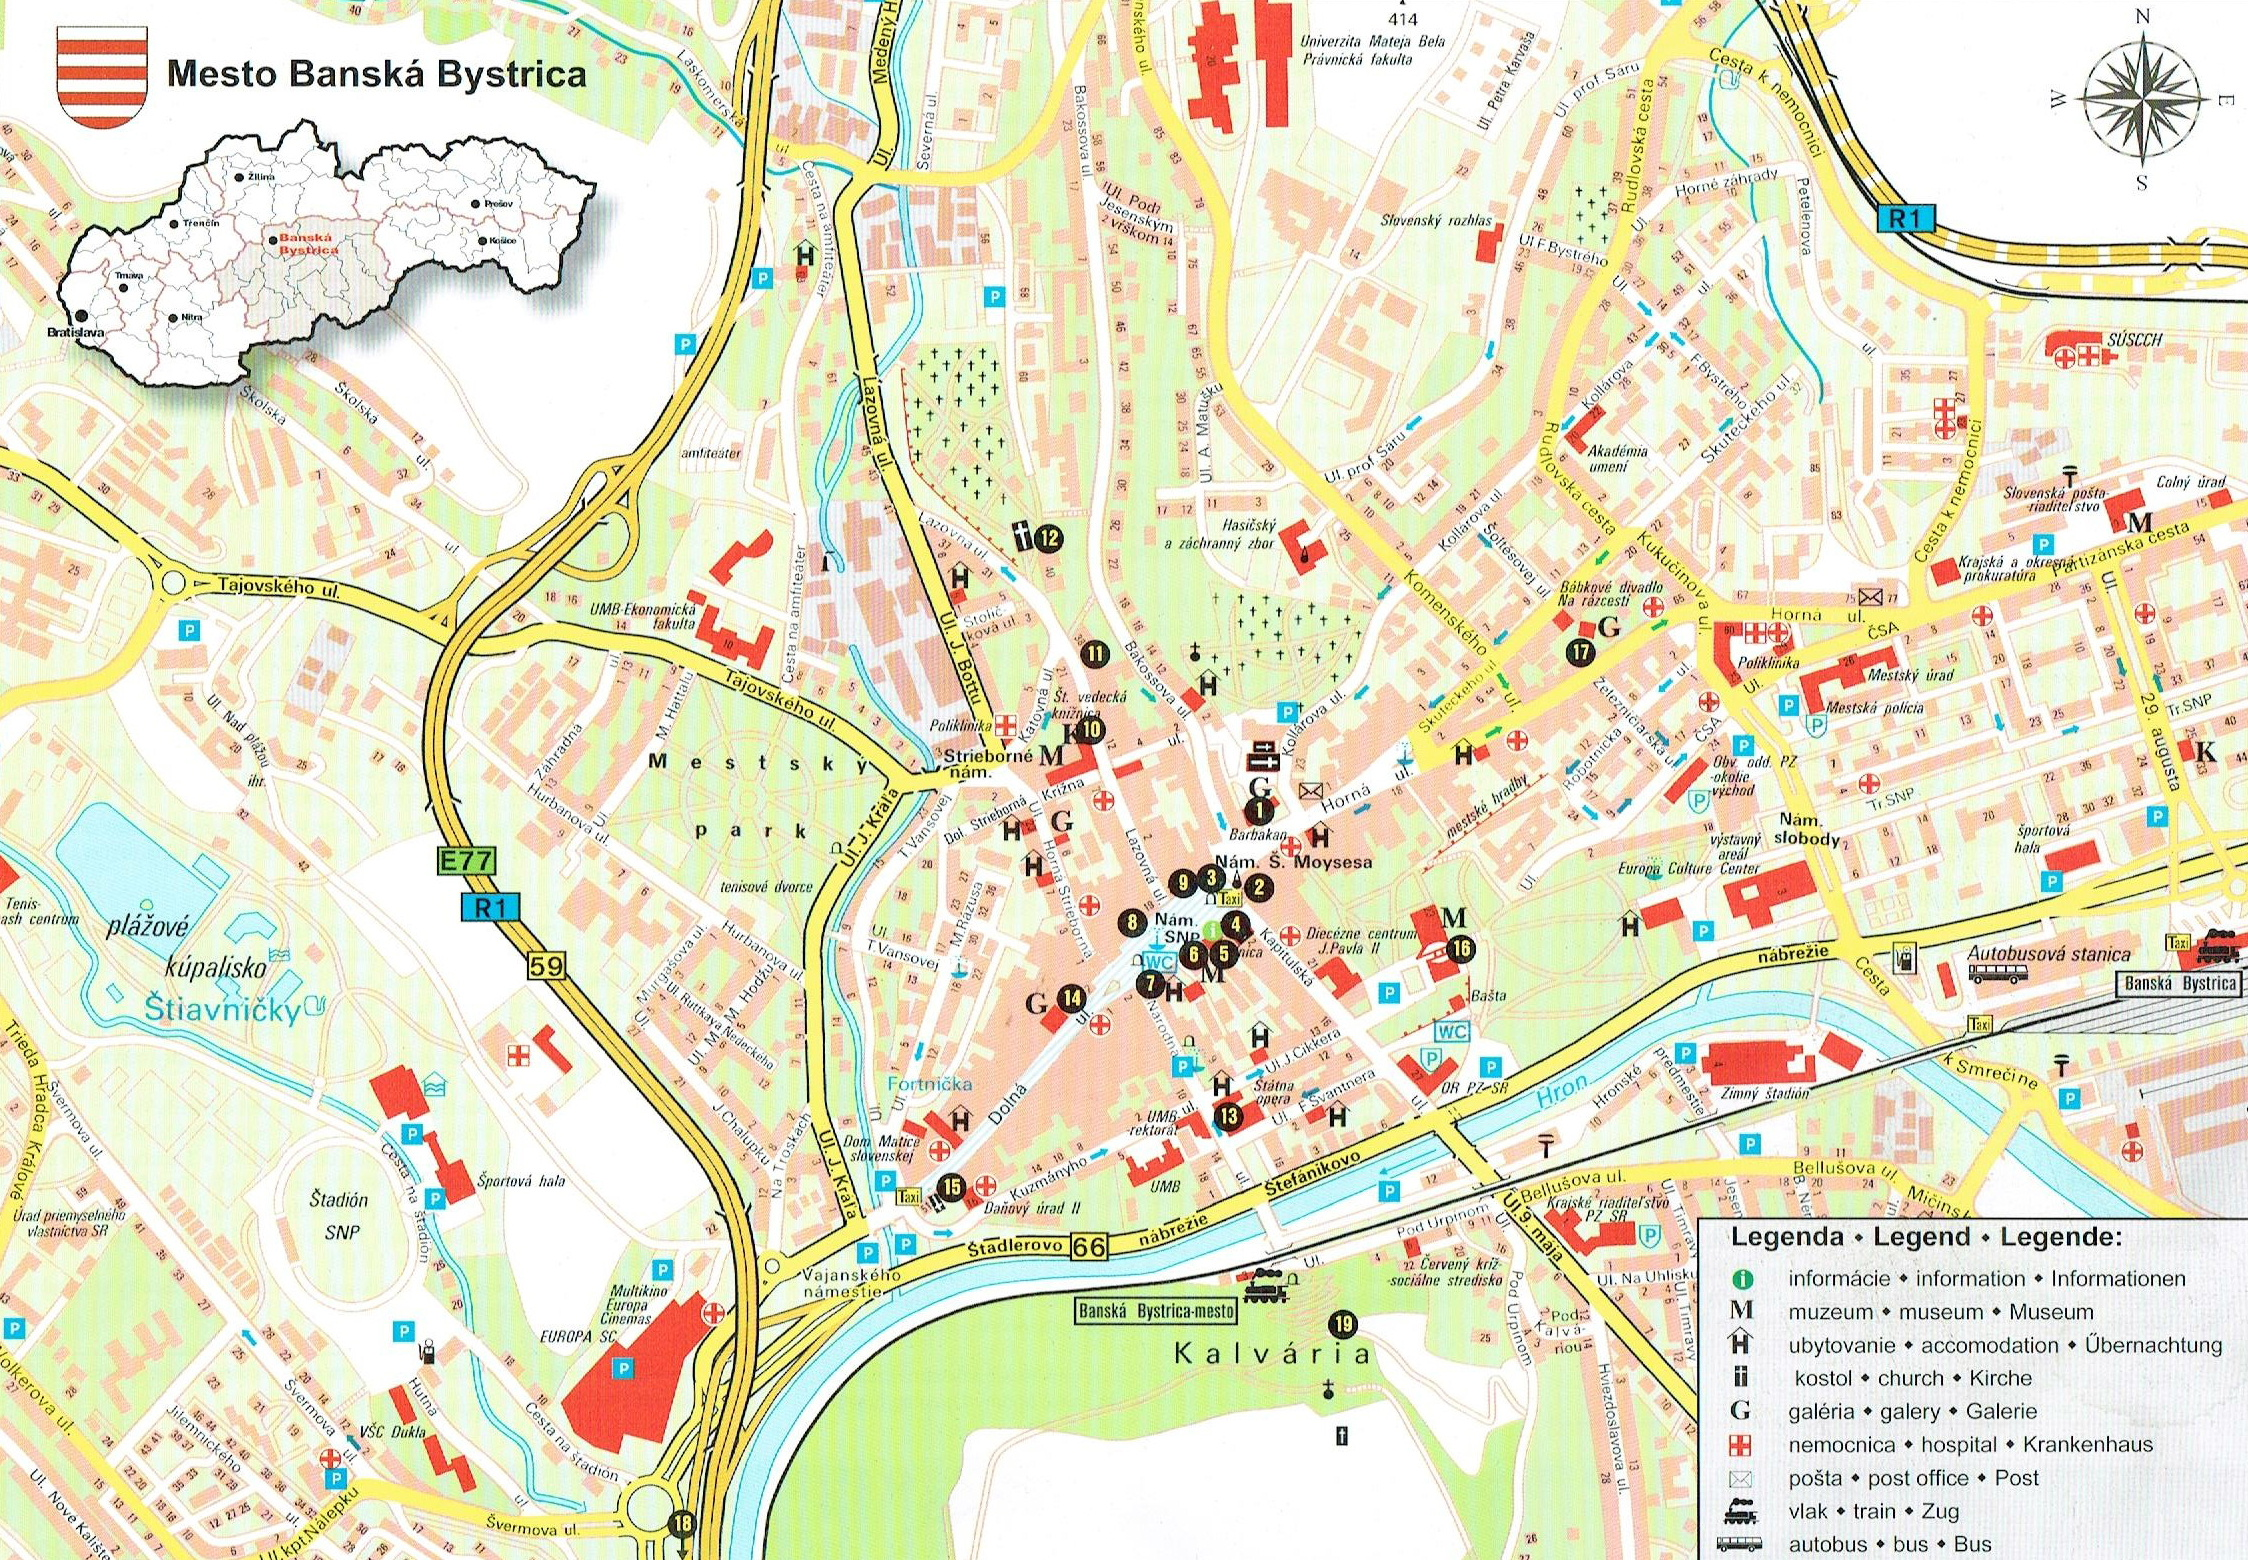 Banska Bystrica Slovakia  city pictures gallery : Banska Bystrica, Slovakia | weepingredorger